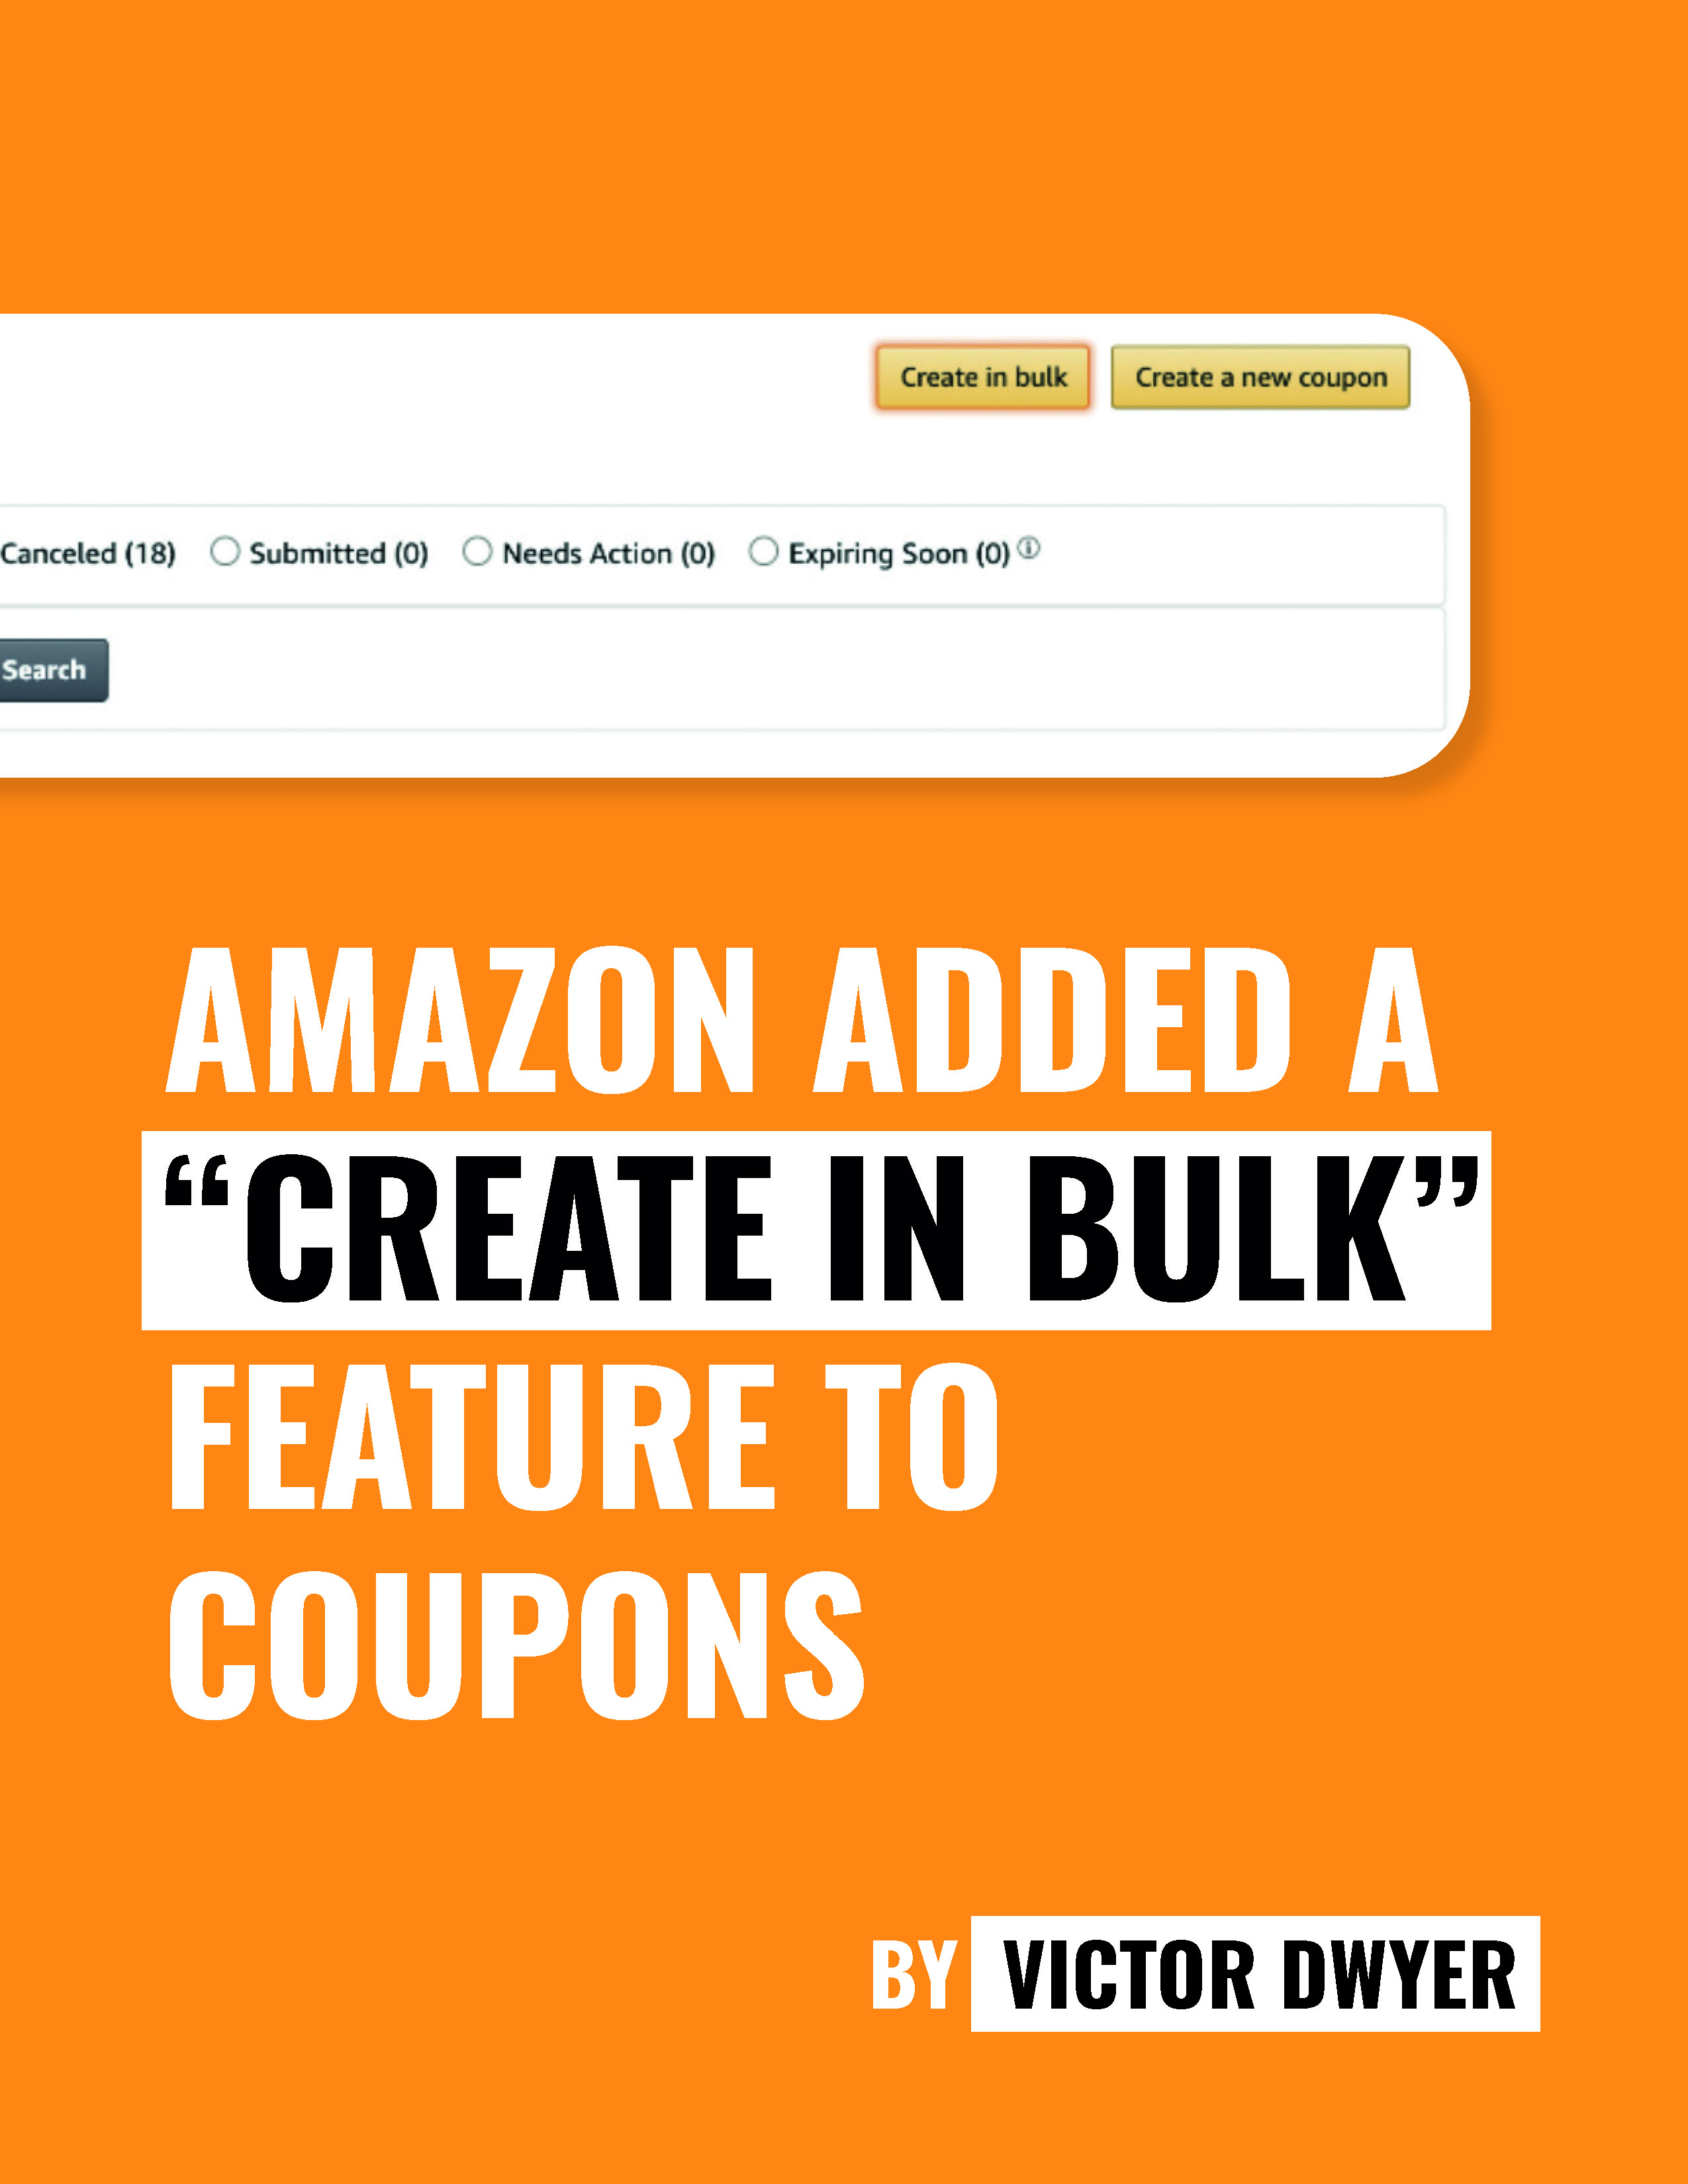 Amazon-Monthly-News-April-2021_Page_02-1